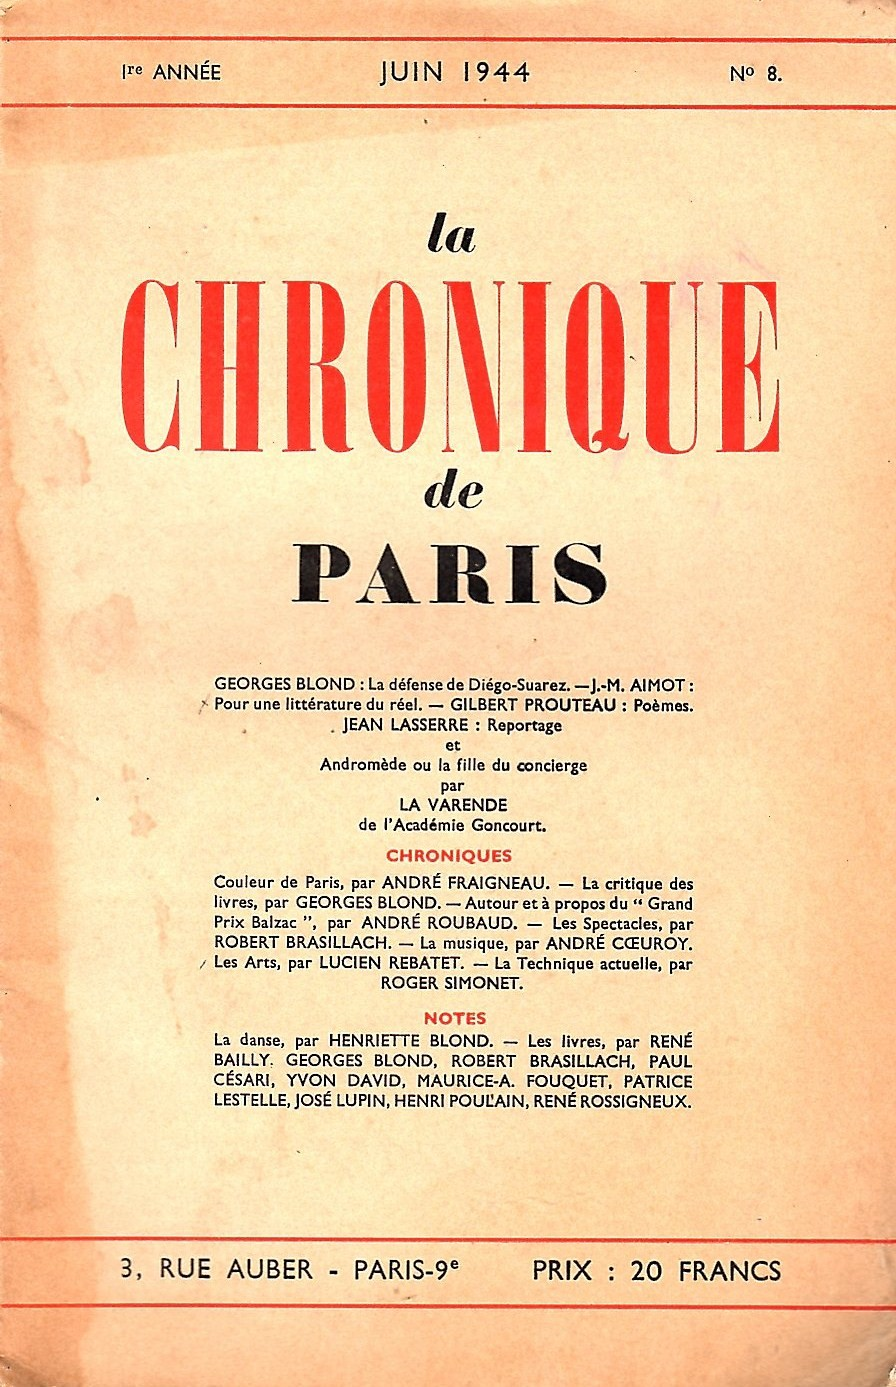 Chronique-de-Paris08.jpg